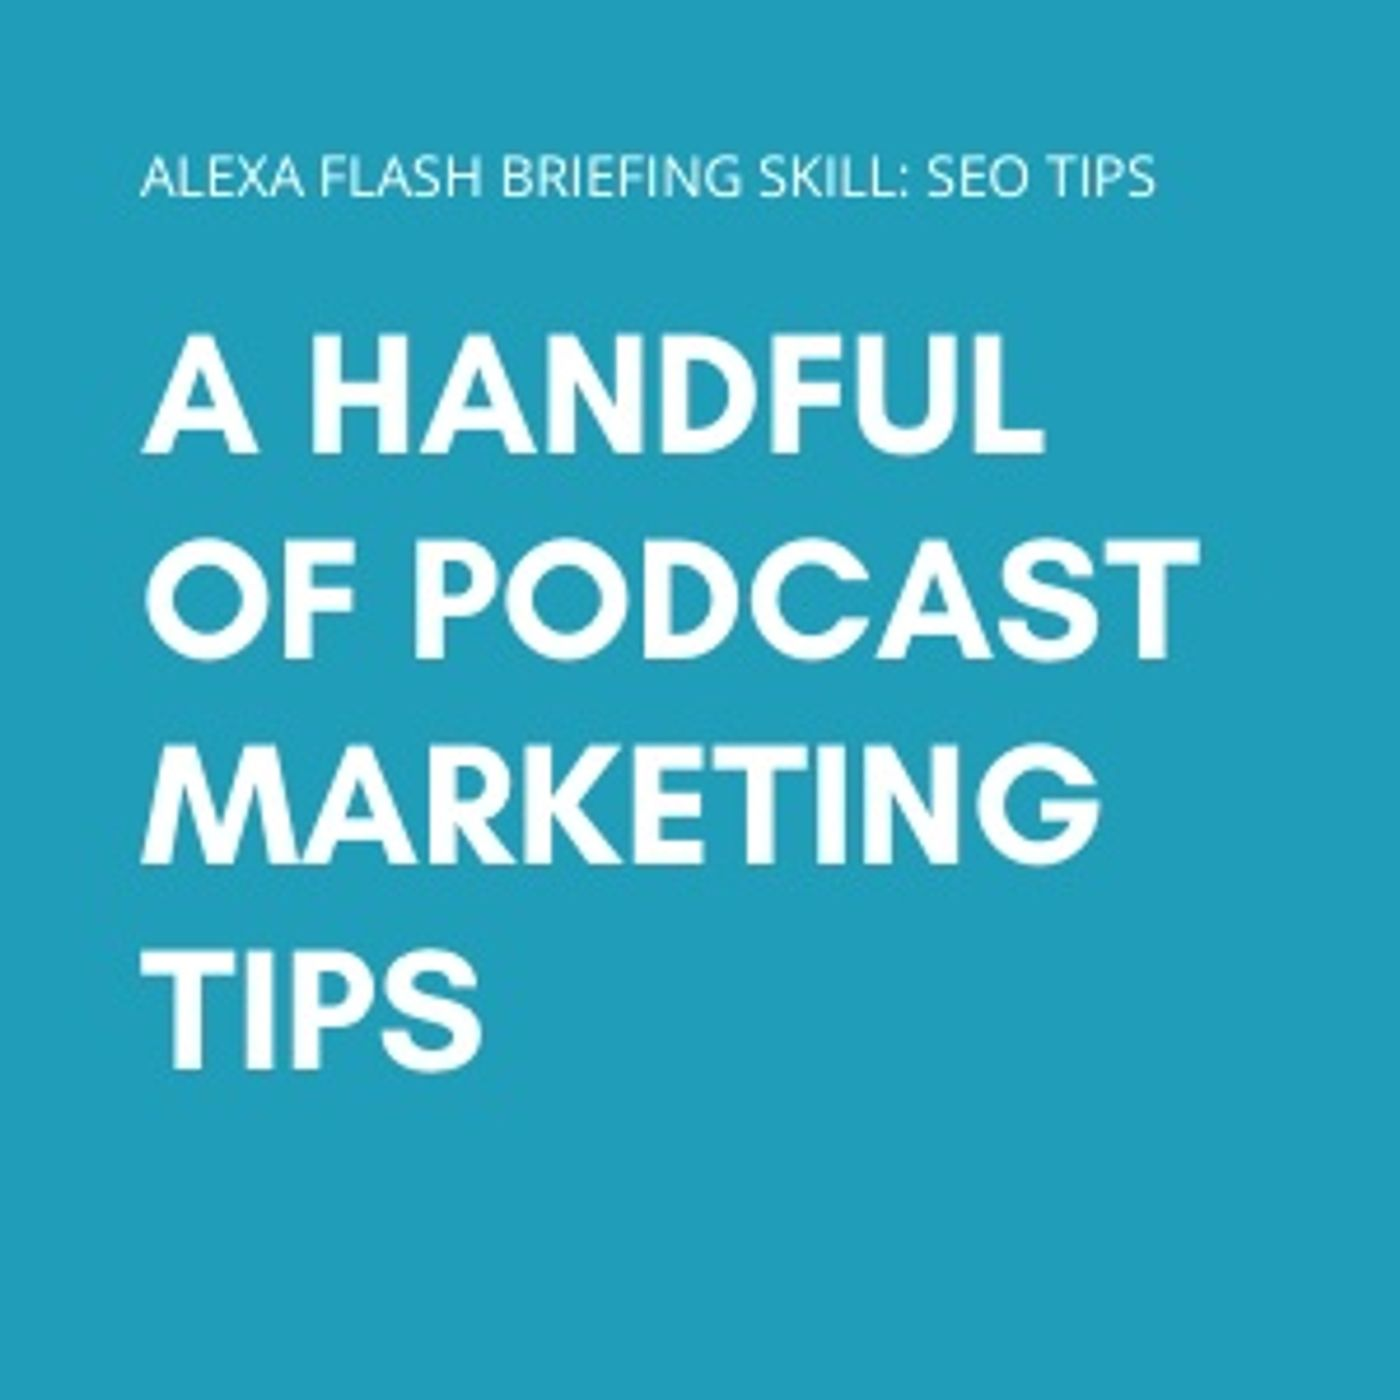 A handful of podcast marketing tips